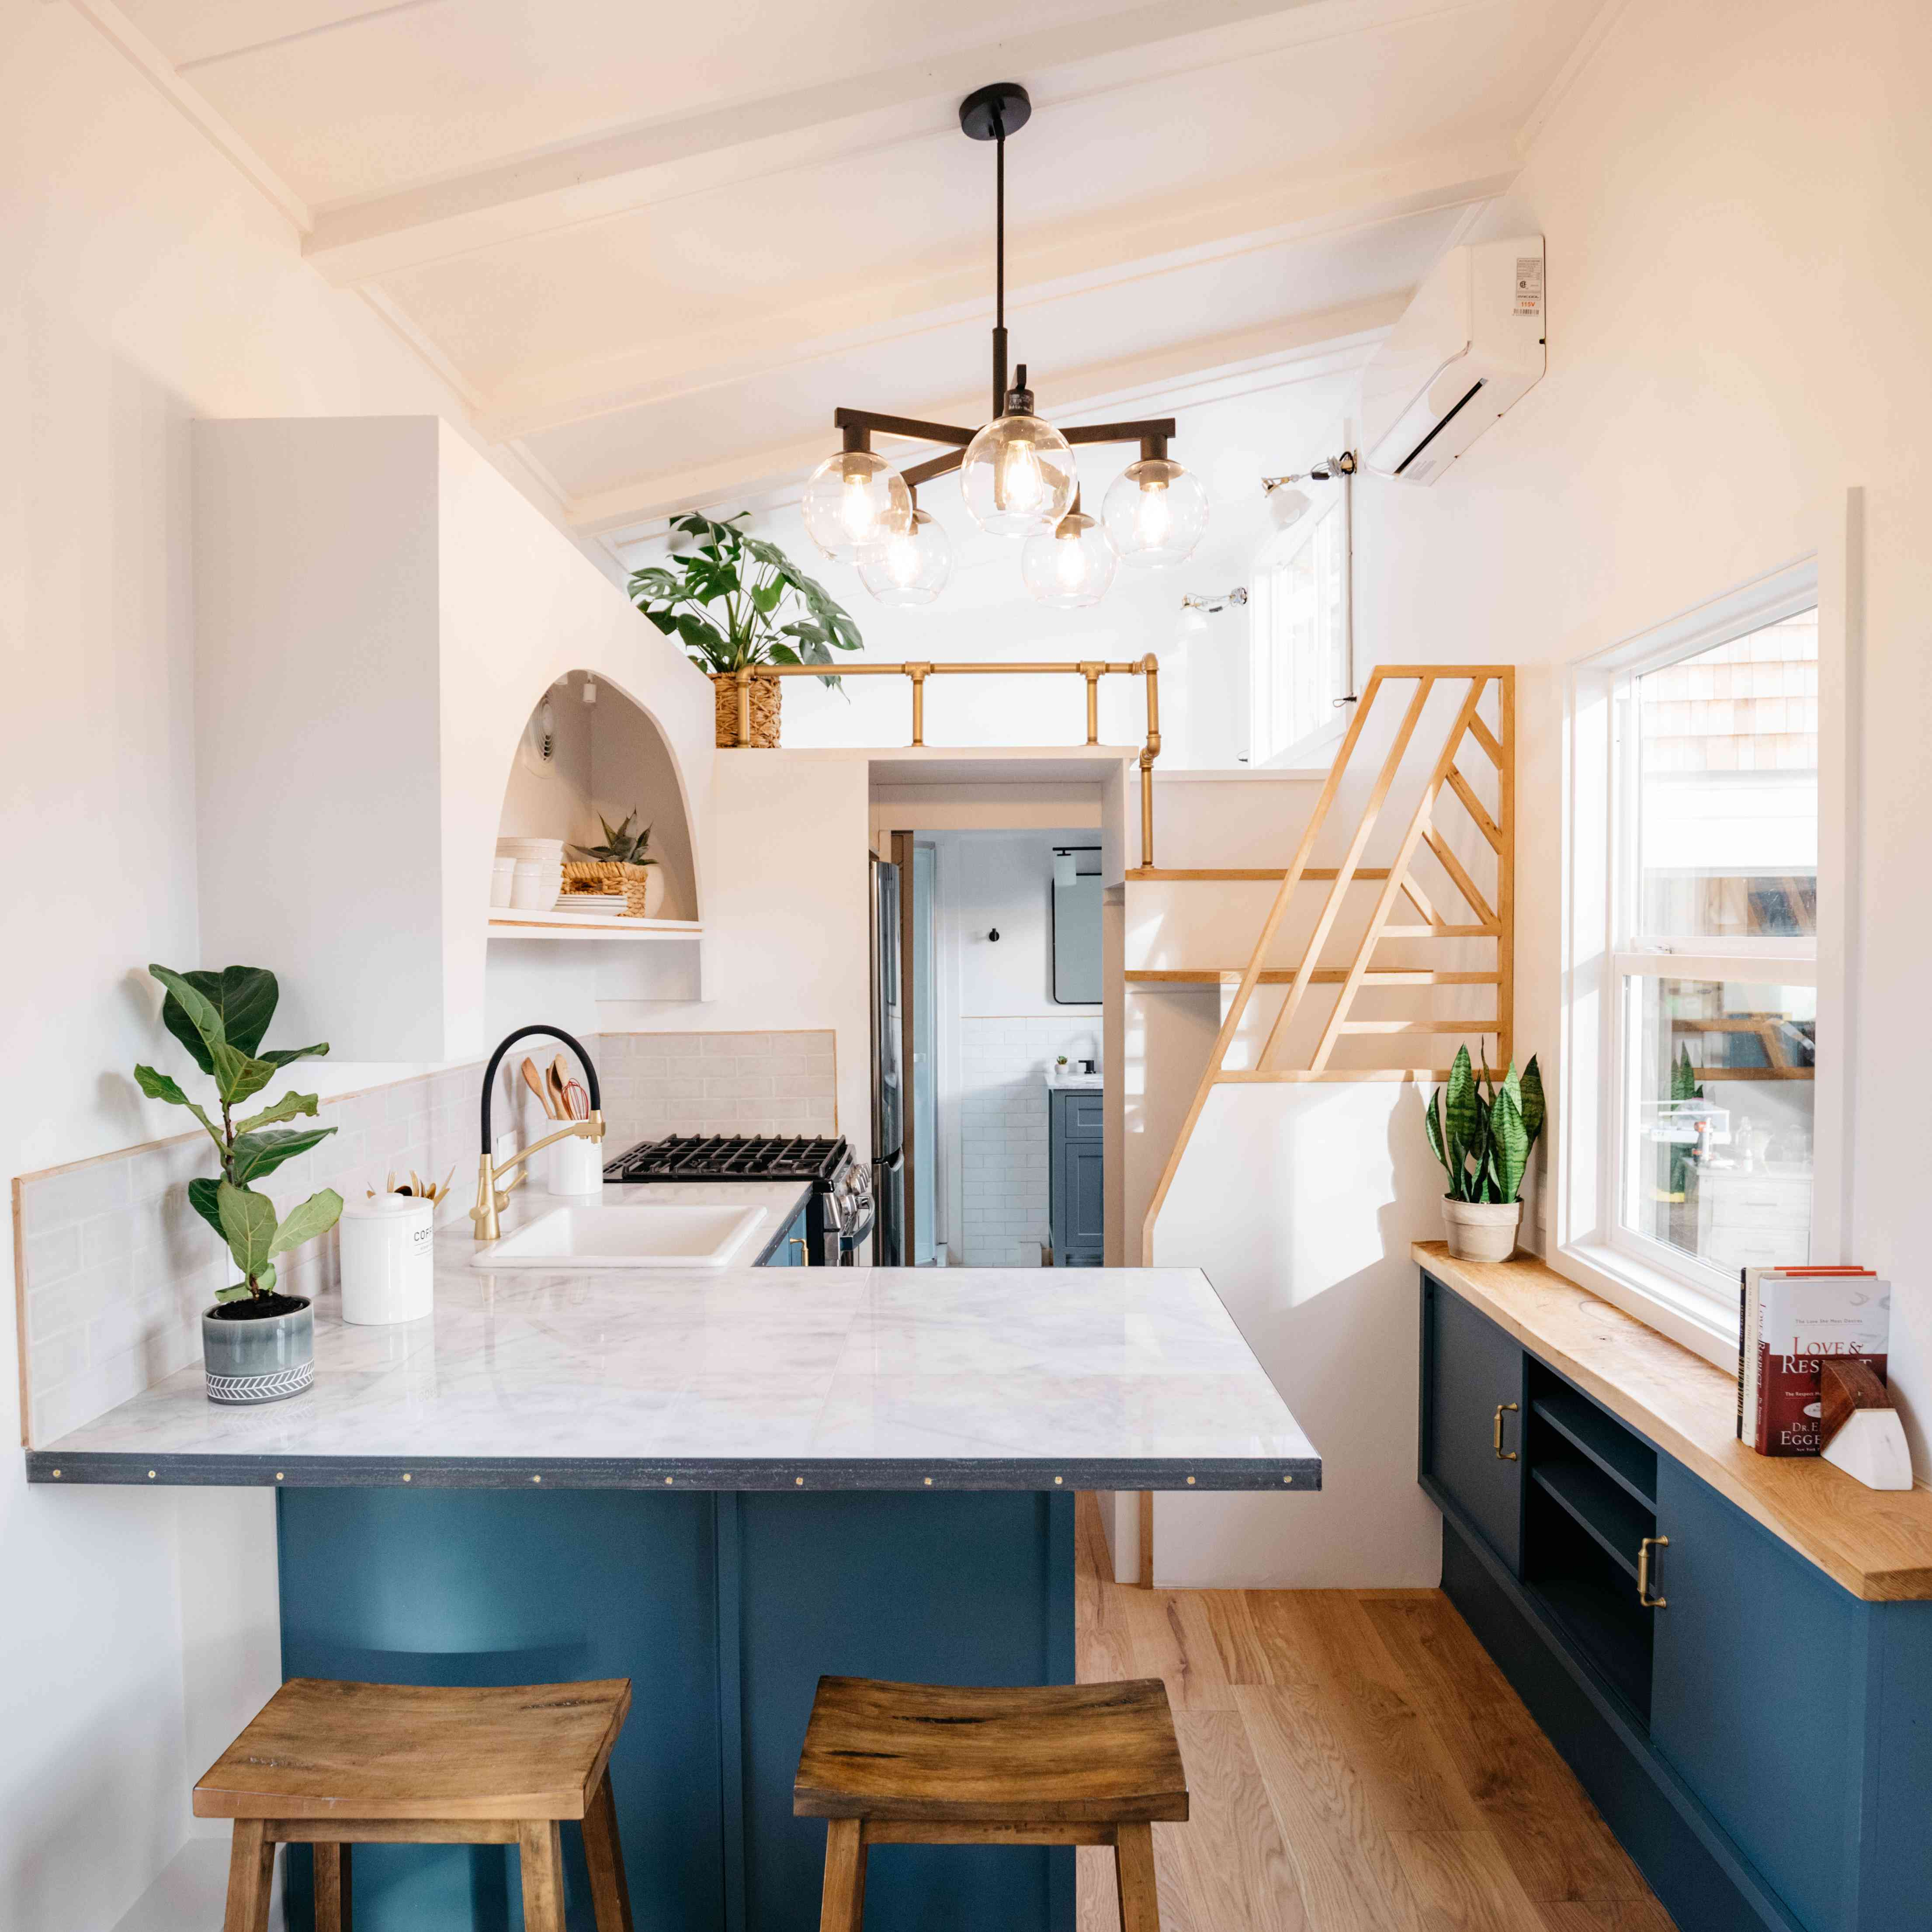 tiny home kitchen with blue cabinets and white marble with wood accents